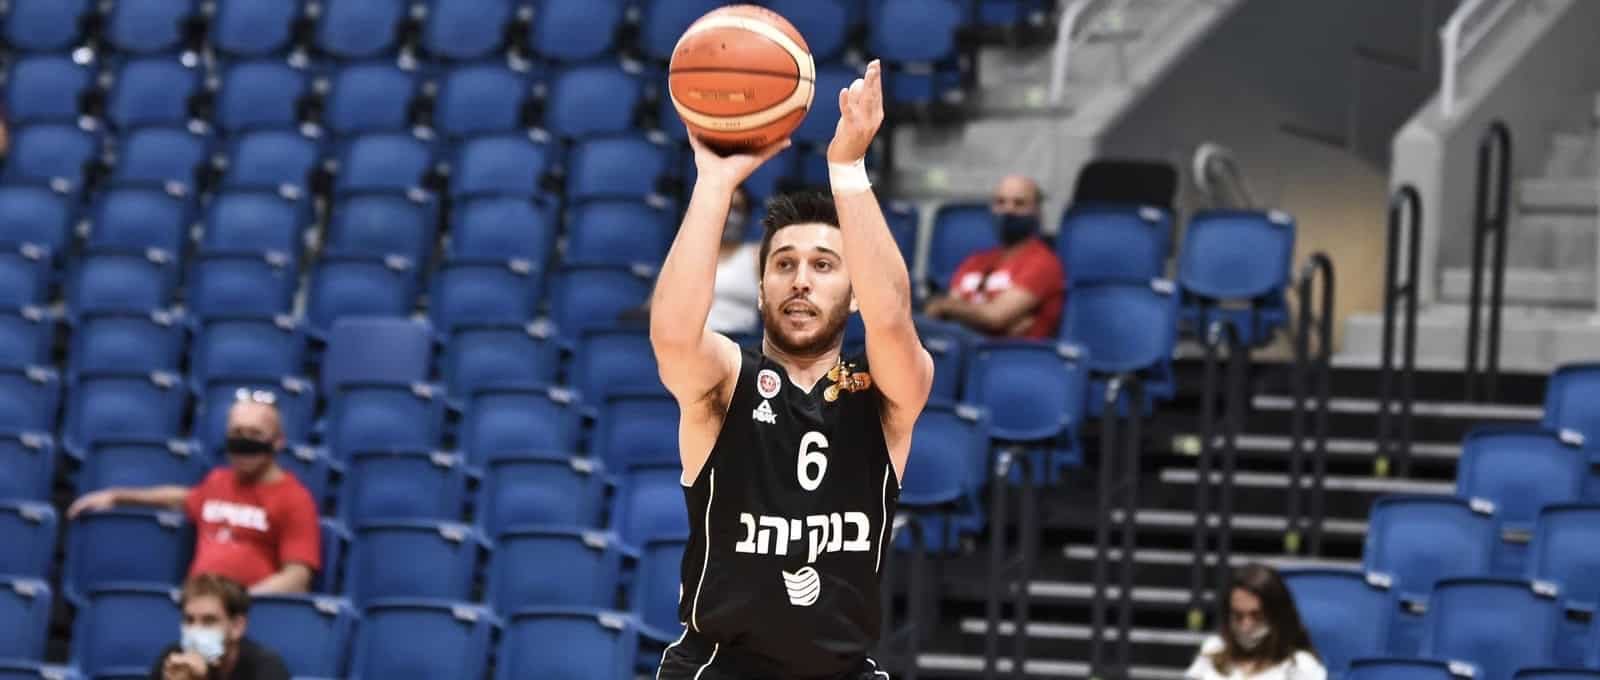 Can Tamir Blatt succeed with Alba Berlin in the Euroleague? Basketball experts weigh in as the guard looks to lead Jerusalem in the Israeli Classico against a quality Euroleague squad, Maccabi Tel Aviv